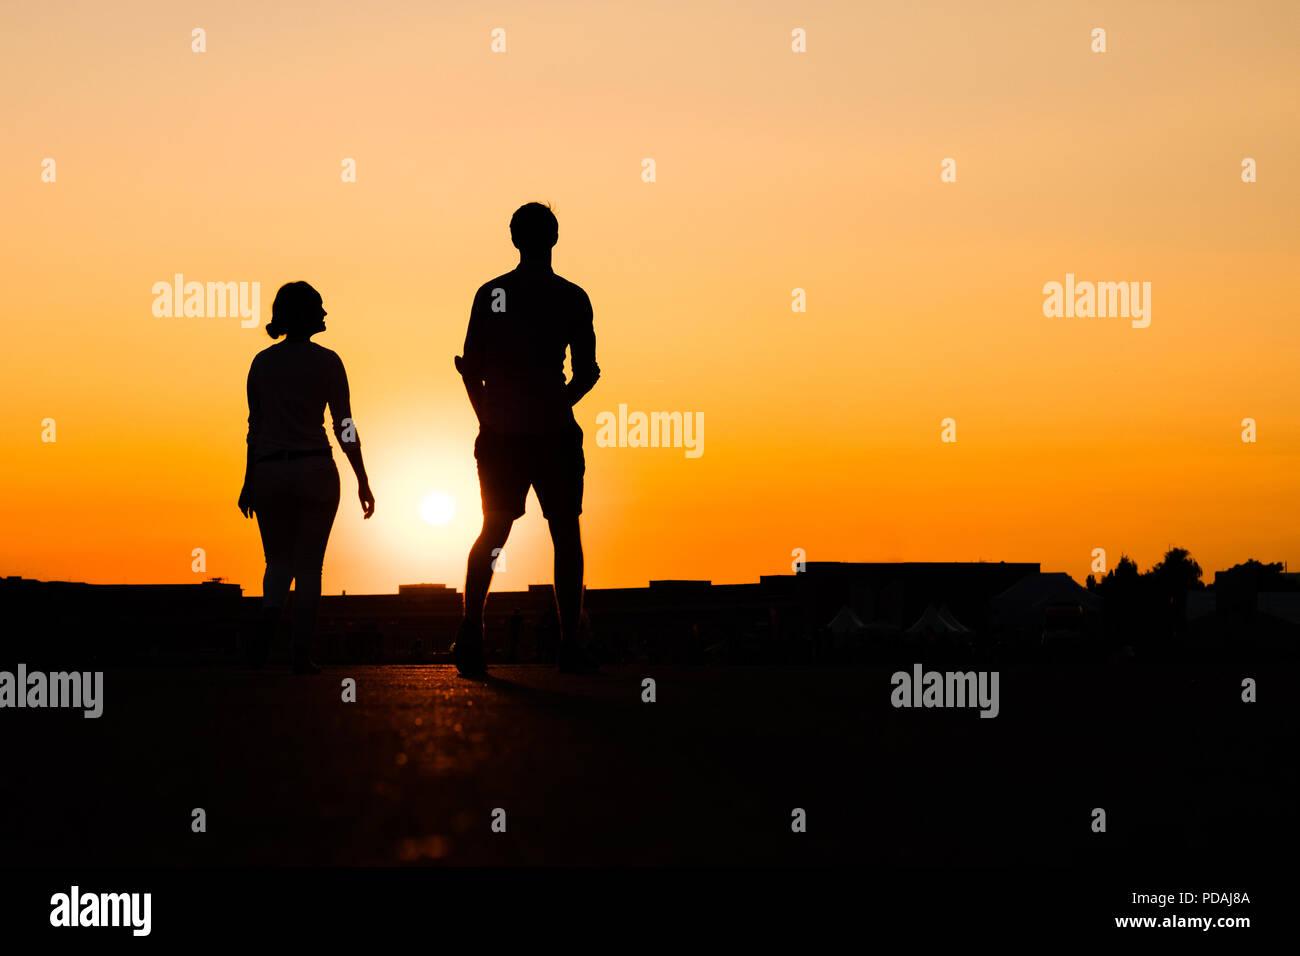 Silhouette Of Girl Looking Up To Boy On Sunset Sky Background Stock Photo Alamy